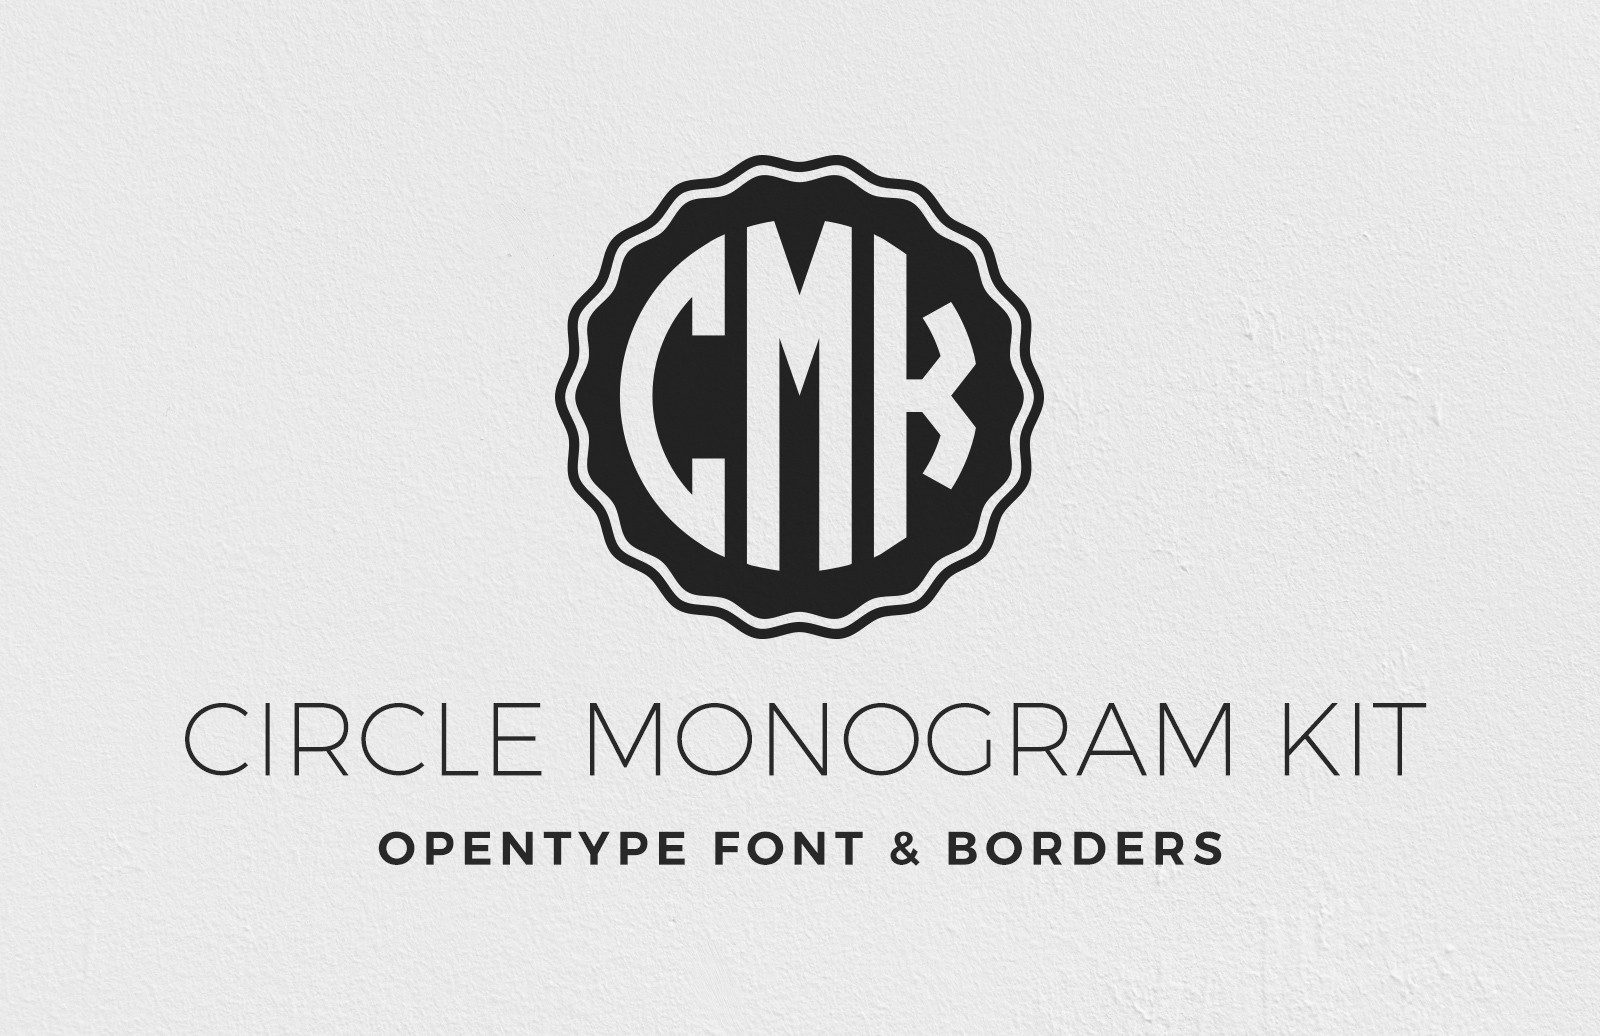 Circle Monogram Font Kit